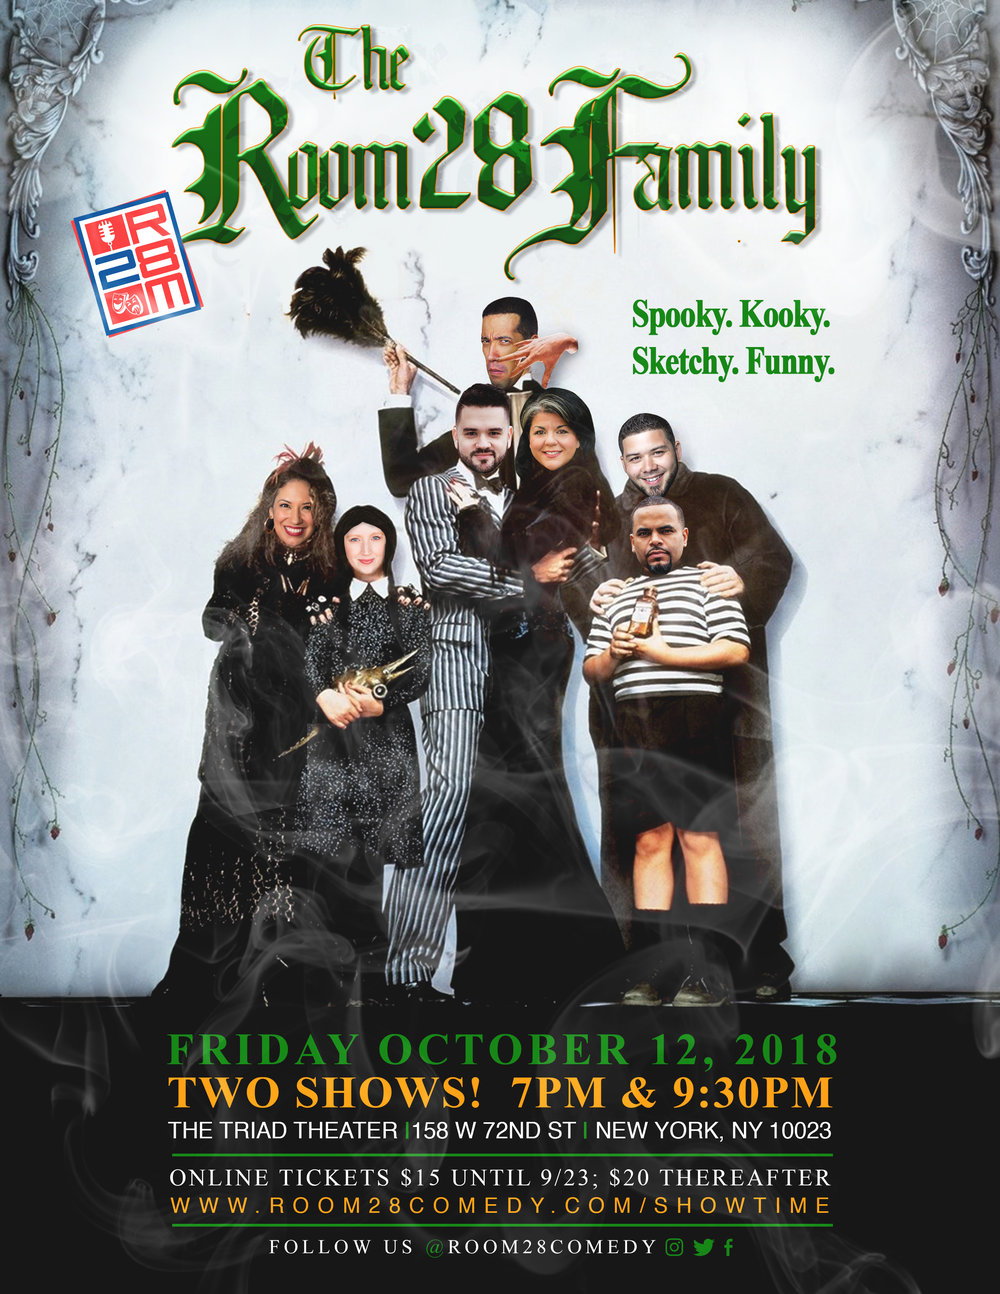 The Room 28 Family Friday, October 12, 2018   TWO SHOWS! 7 PM & 9:30 PM   The Triad Theatre 158 West 72nd Street  New York, NY 10023  Tickets $15 until 9/17; $20 Thereafter www.room28comedy.com/showtime  Follow us @Room28Comedy  The NYC-based multicultural sketch comedy troupe is back with a slew of new self-written video and live sketches for the Halloween season.  Our sketches combine exaggerated behavior, celebrity impressions, outrageous characters and pungent punch lines. You don't want to miss a beat. TWO SHOWS! ONE NIGHT ONLY! Follow us on Instagram and Facebook for more info @Room28Comedy or log on to www.room28comedy.com NOW!